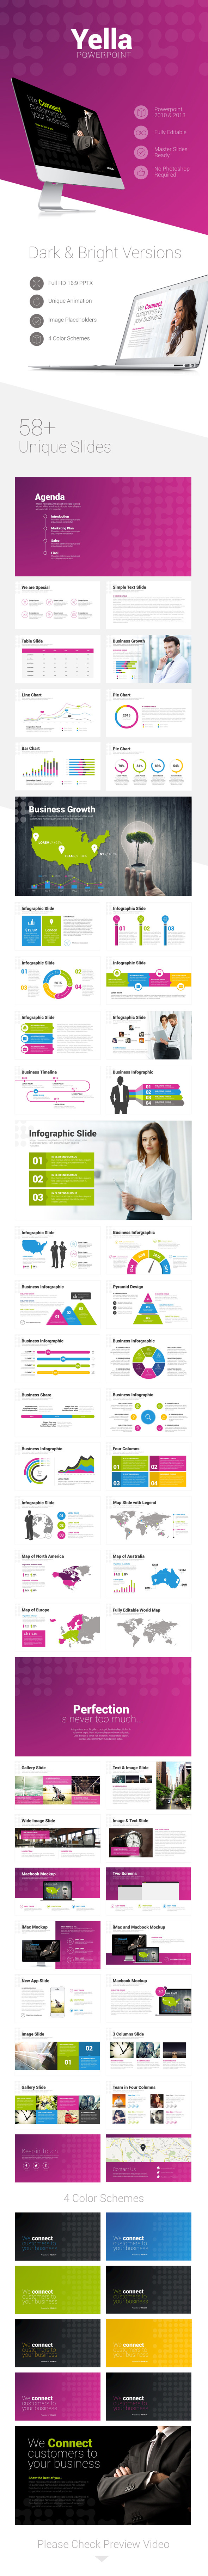 GraphicRiver Yella Powerpoint Template 10179458